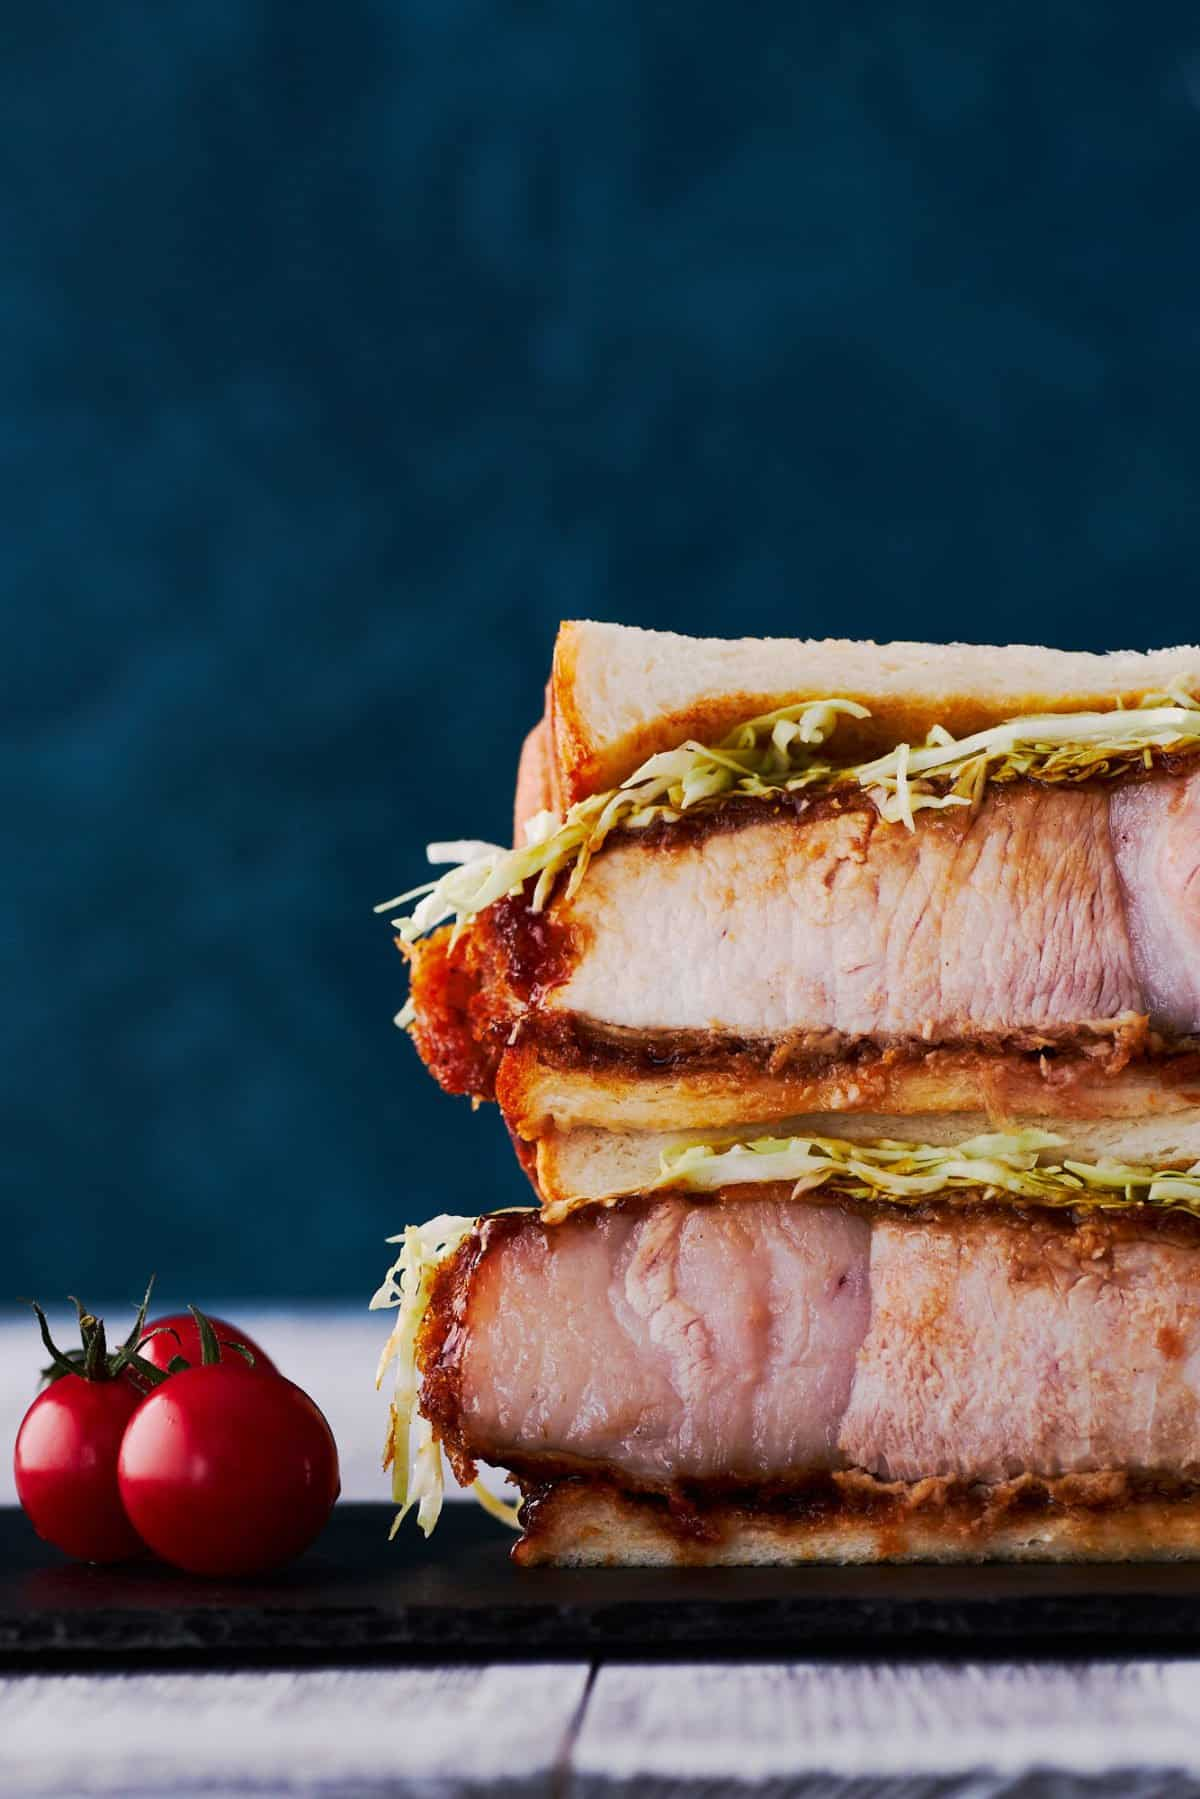 With a thick juicy fried pork cutlet doused in a spiced fruit sauce, stuffed between two slices of fluffy Japanese sandwich bread, Katsu Sandwiches are so good that people are paying hundreds of dollars for them. This easy Katsu Sando recipe will make your stomach smile without breaking the bank.